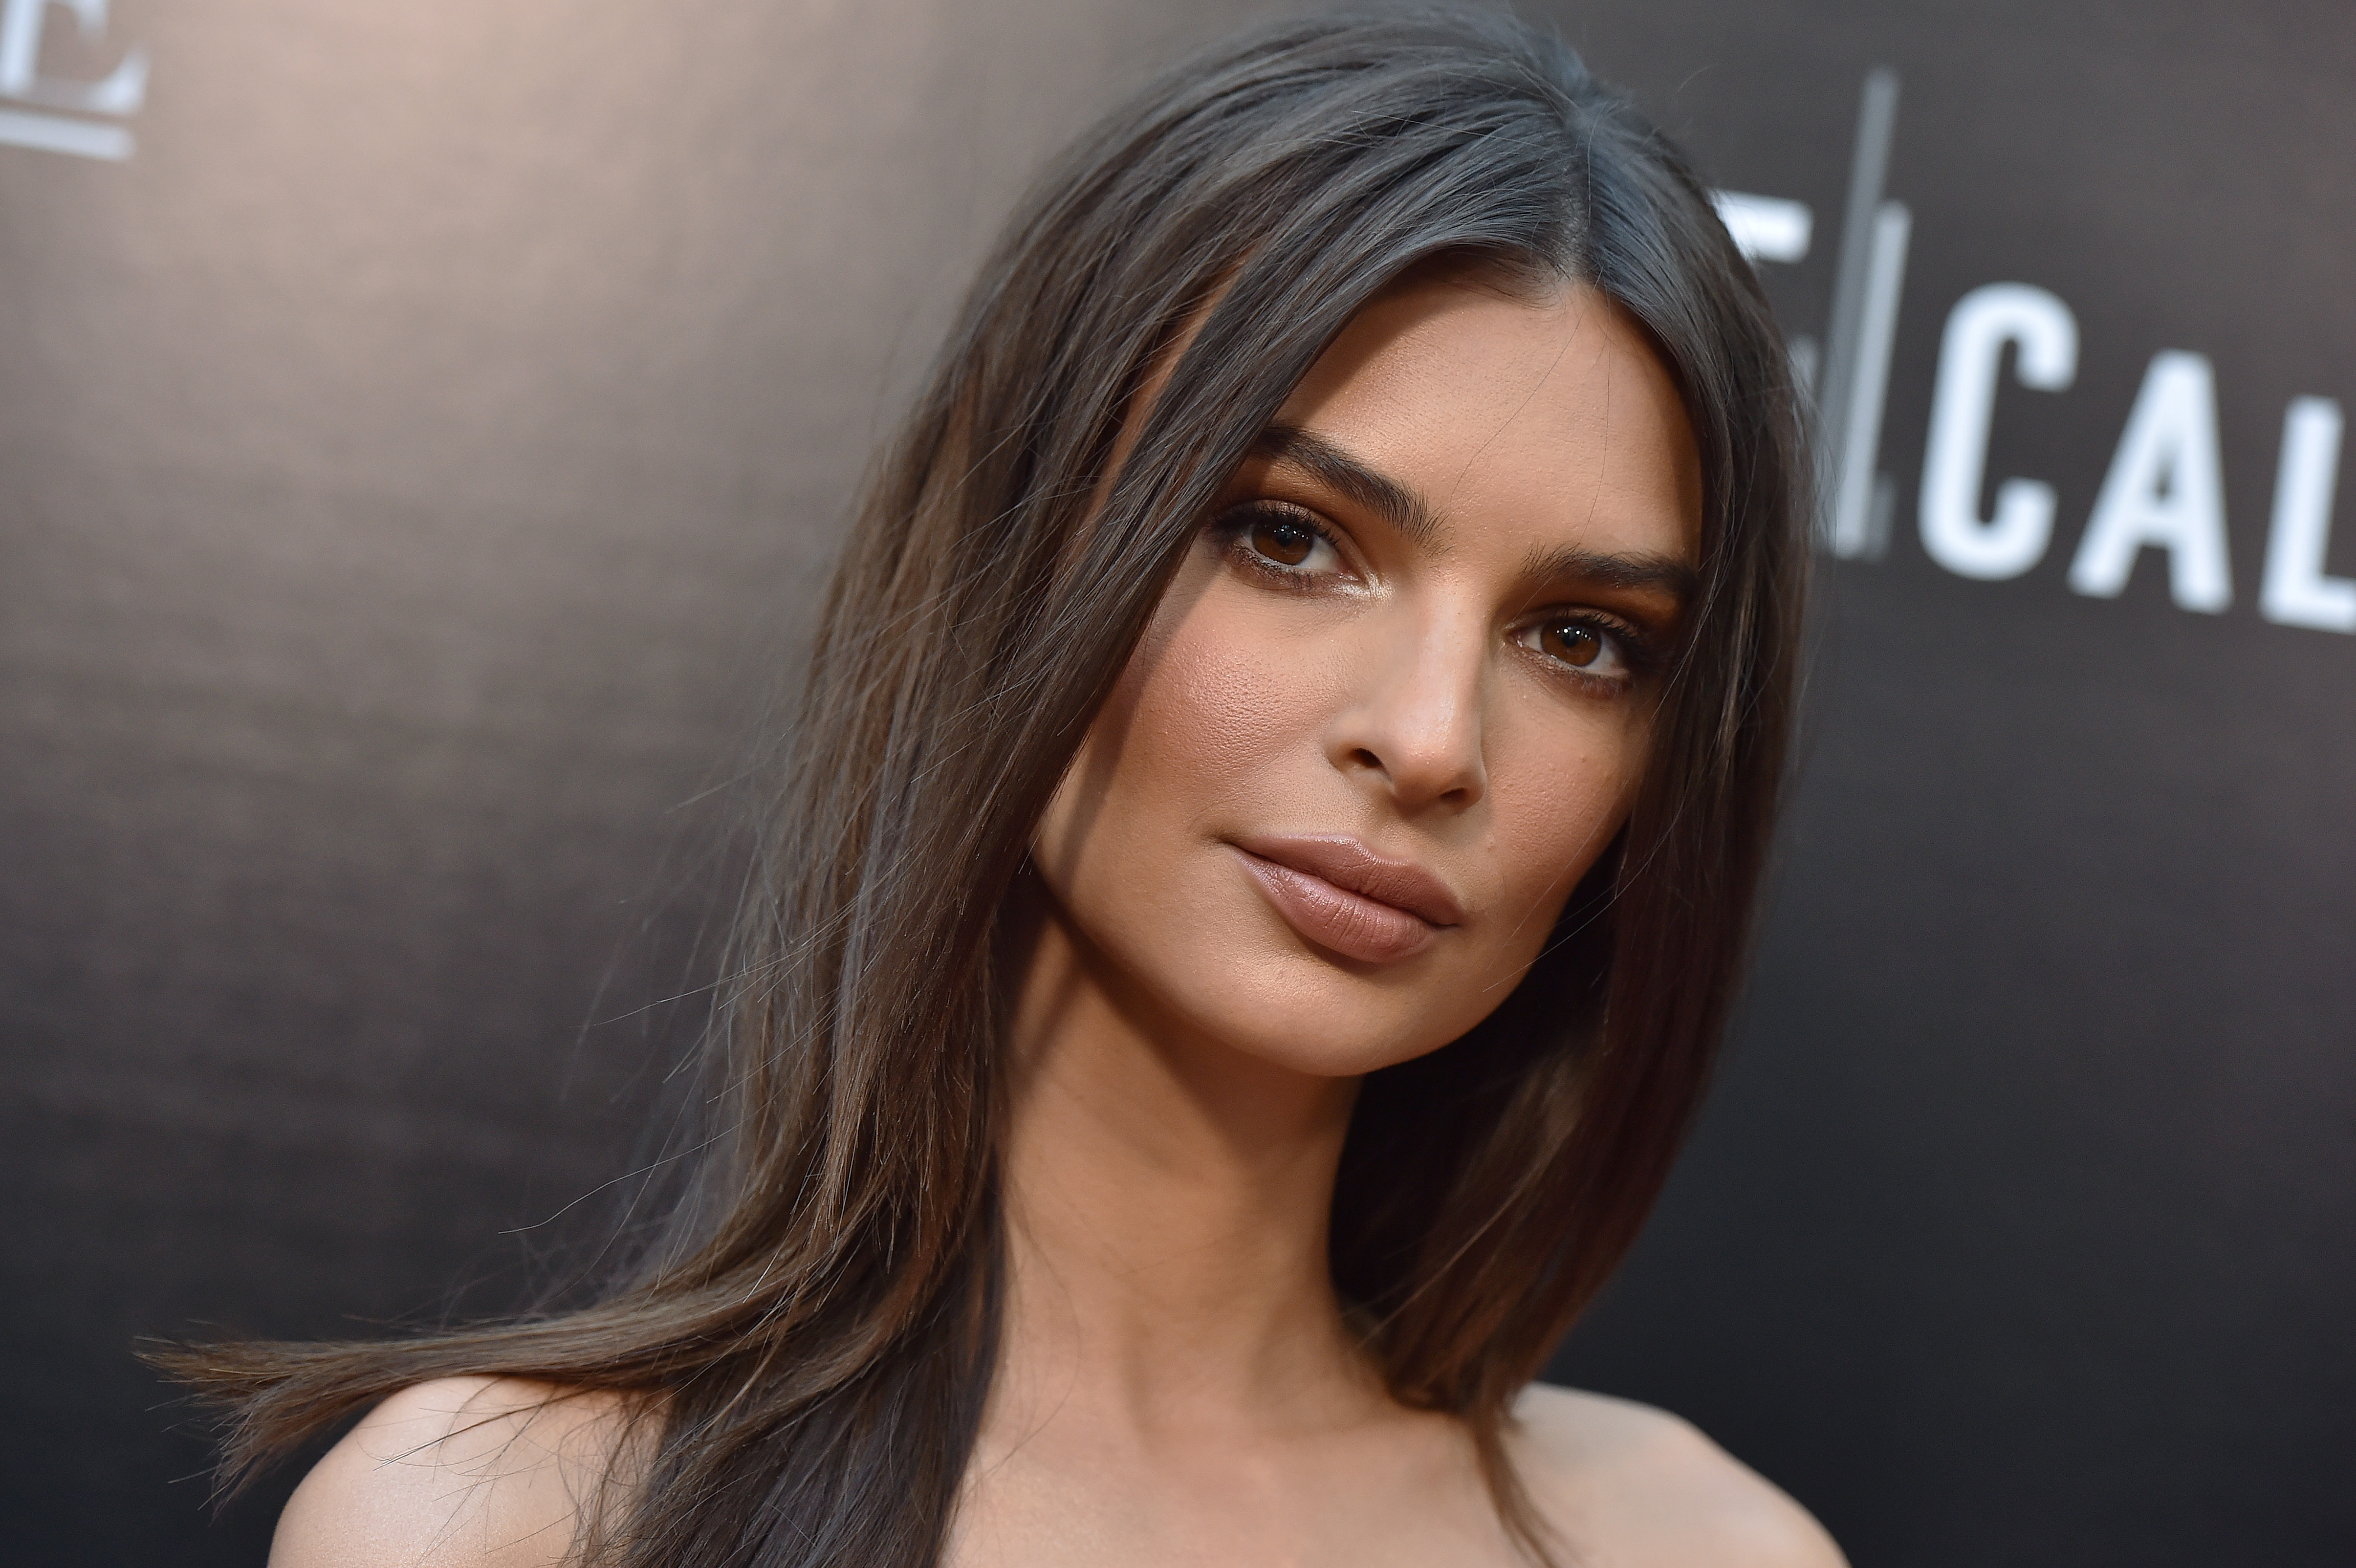 Emily Ratajkowski defends views as she admits she's 'still figuring out' feminism